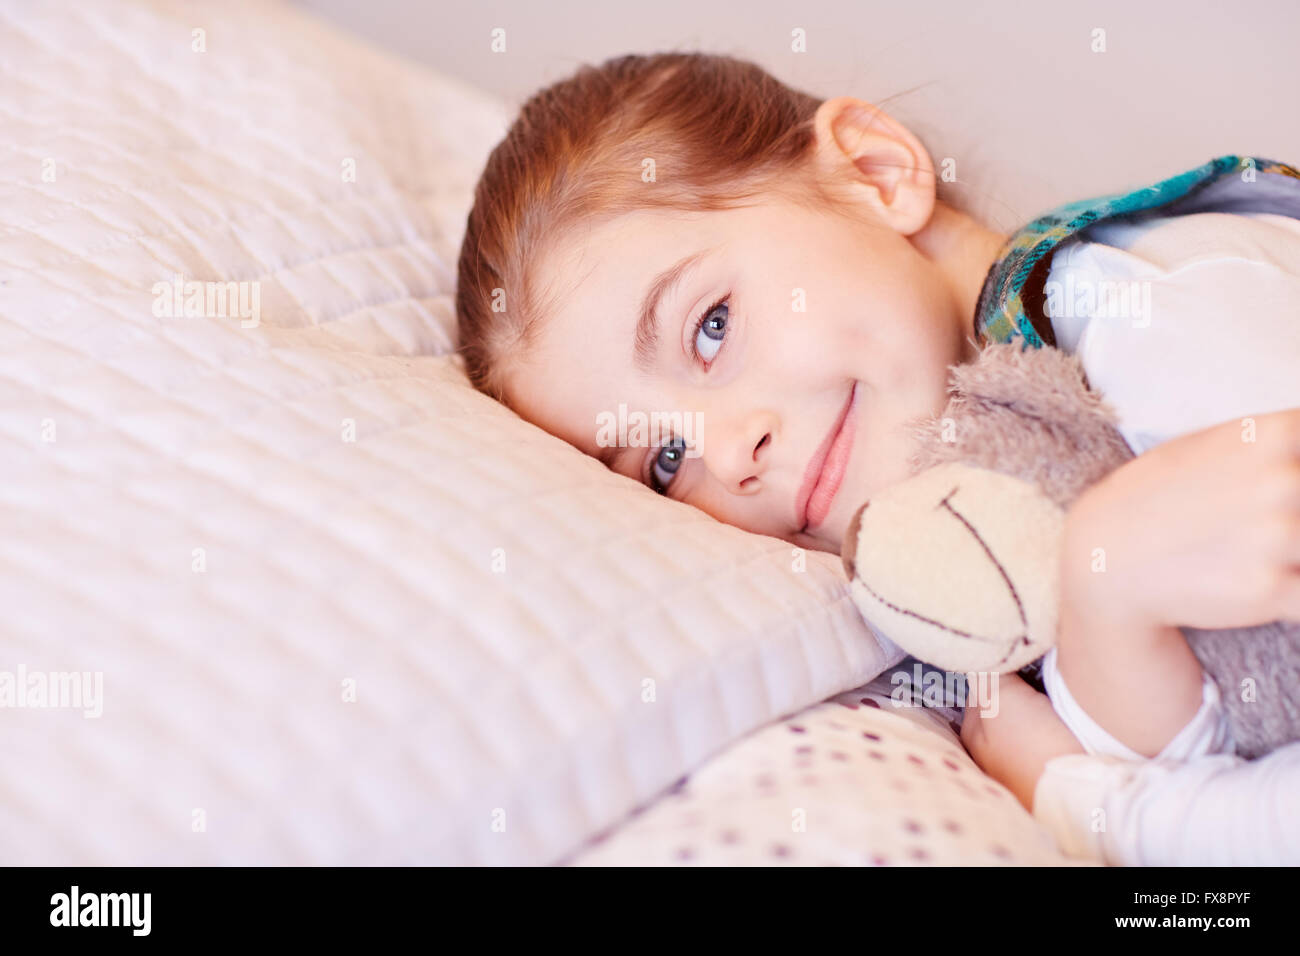 If I sleep, teddy sleeps too - Stock Image